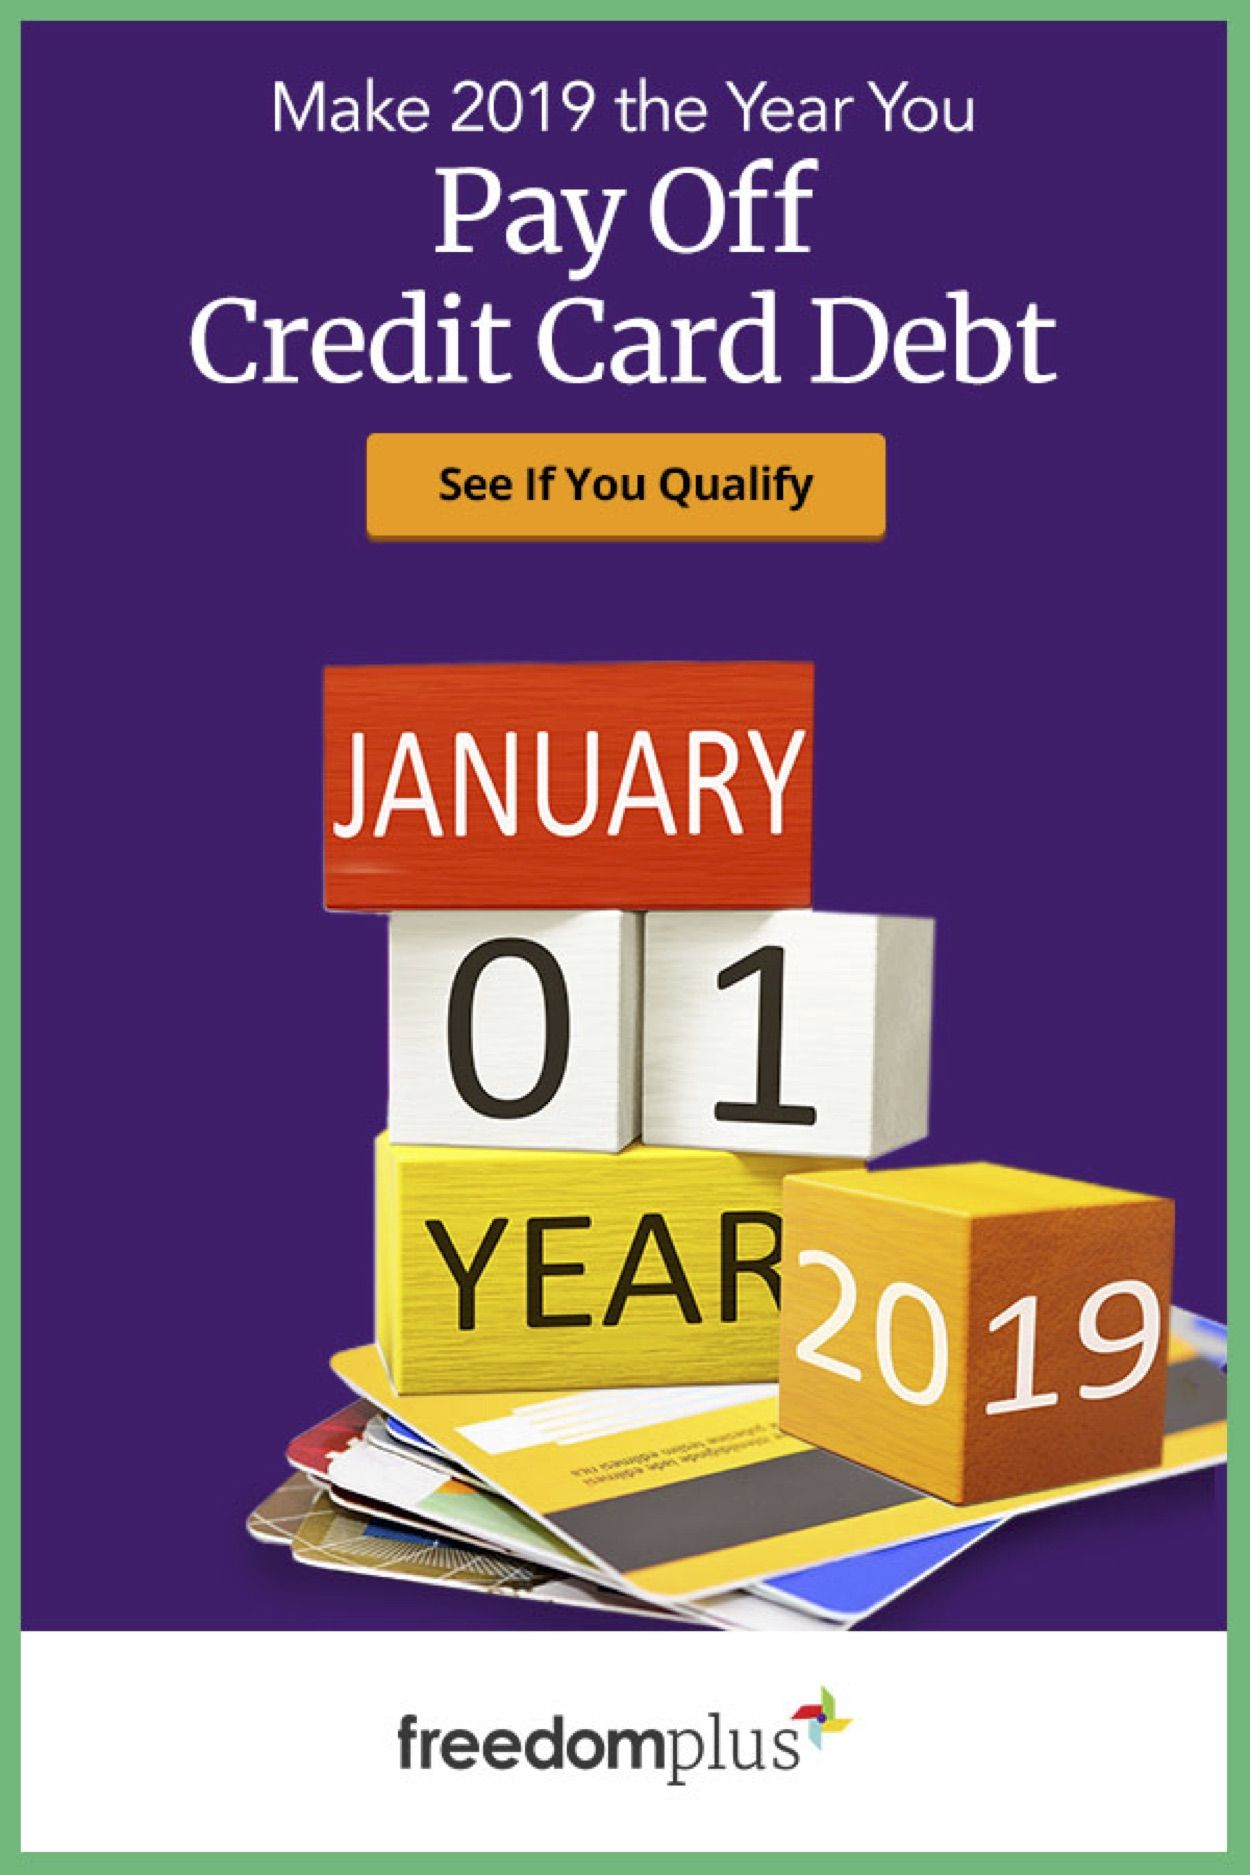 Get Out Of High Interest Credit Card Debt In 2019 With A Low Rate Personal Loan Of 10 000 40 000 Su Paying Off Credit Cards Credit Cards Debt Personal Loans